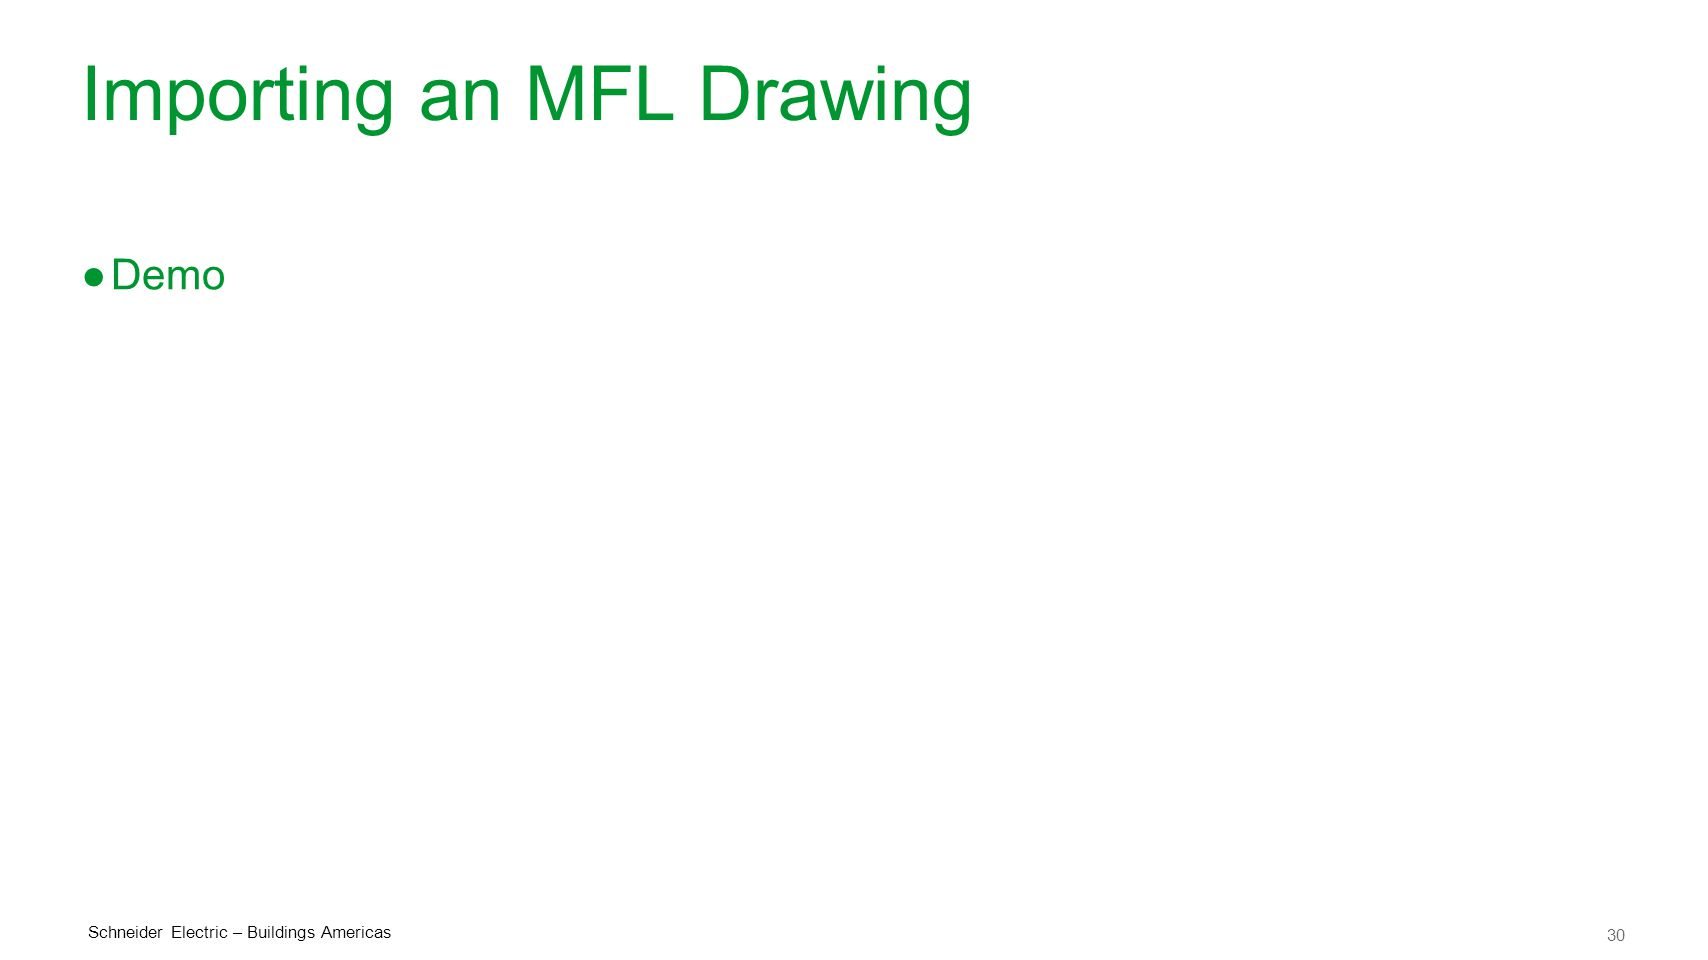 Importing an MFL Drawing